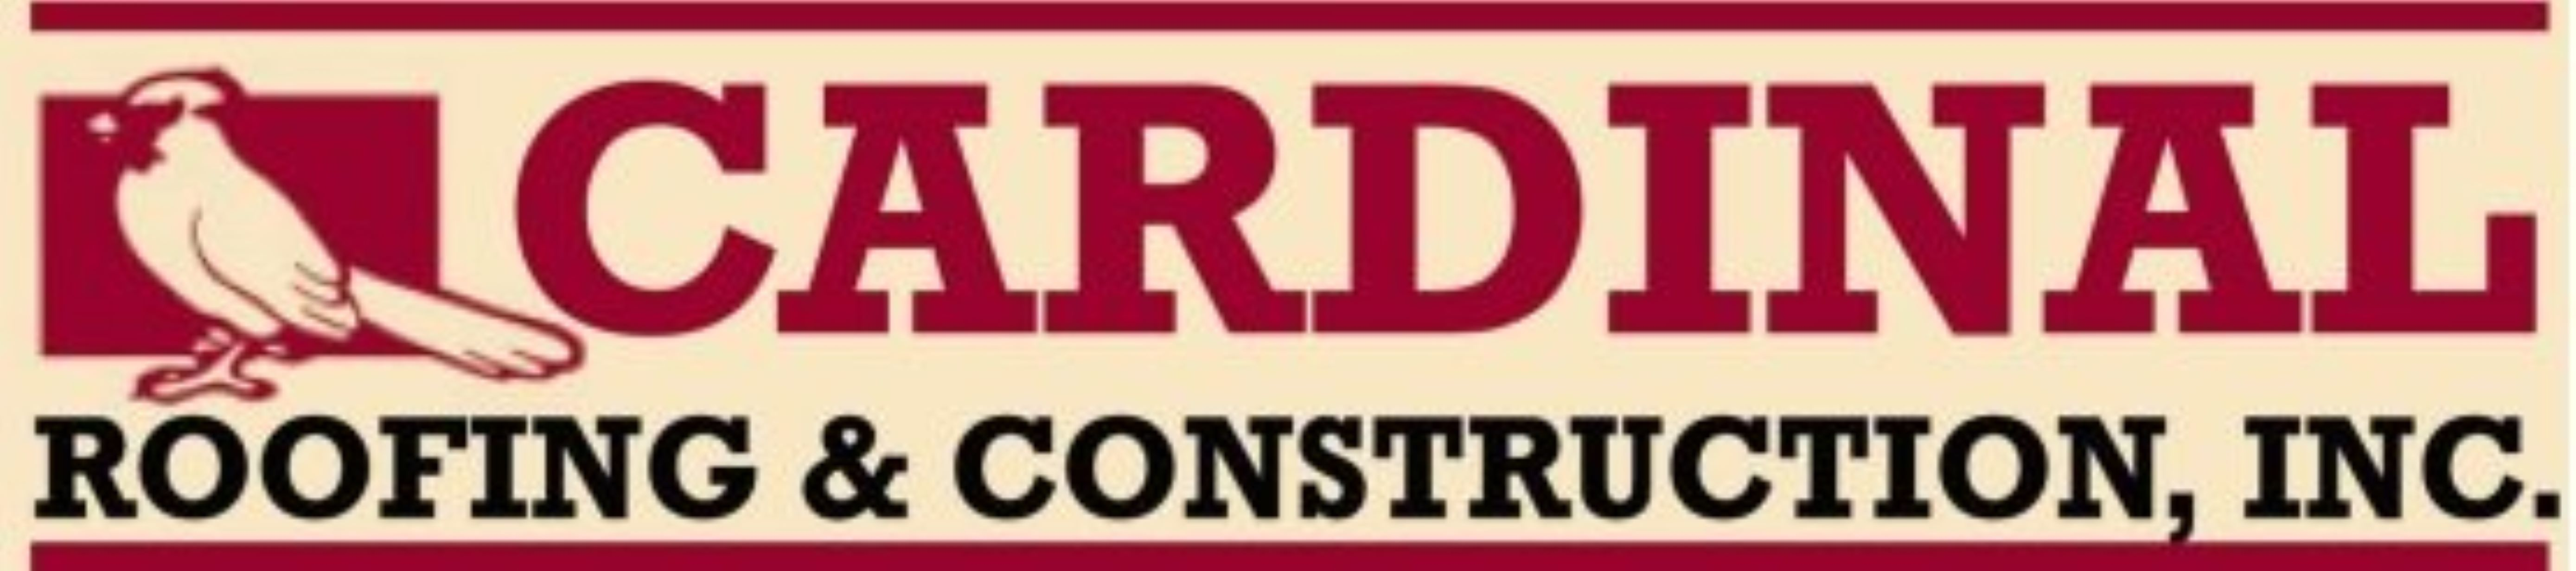 Cardinal Roofing & Construction, Inc.